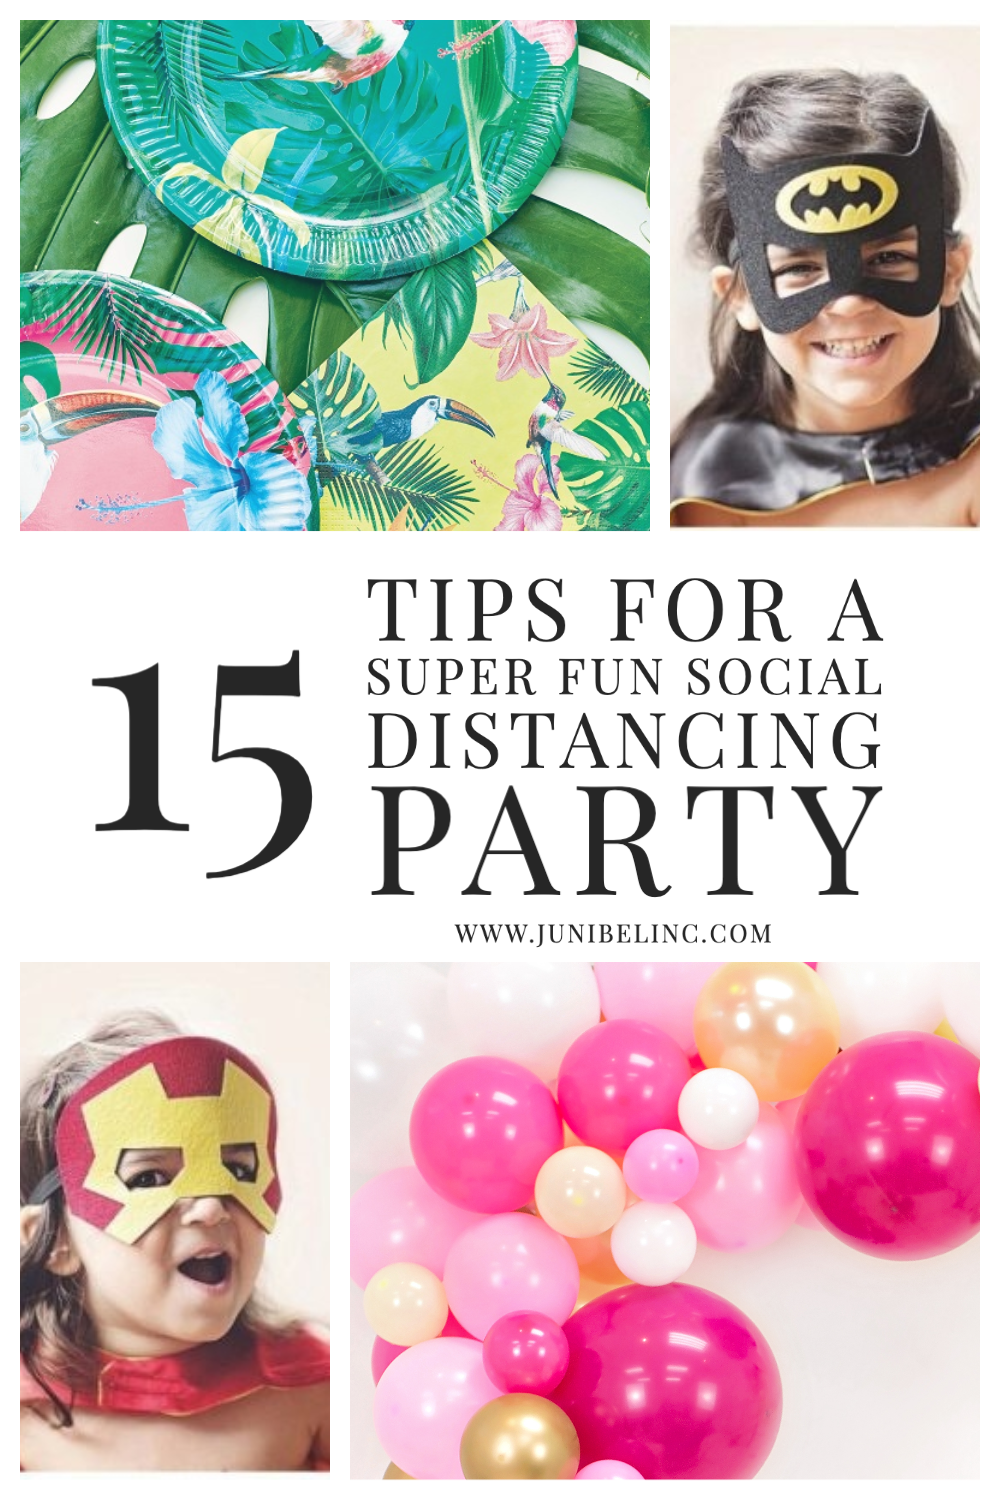 15 Top Tips to Plan a Super Fun Social Distancing Party Balloon Garland